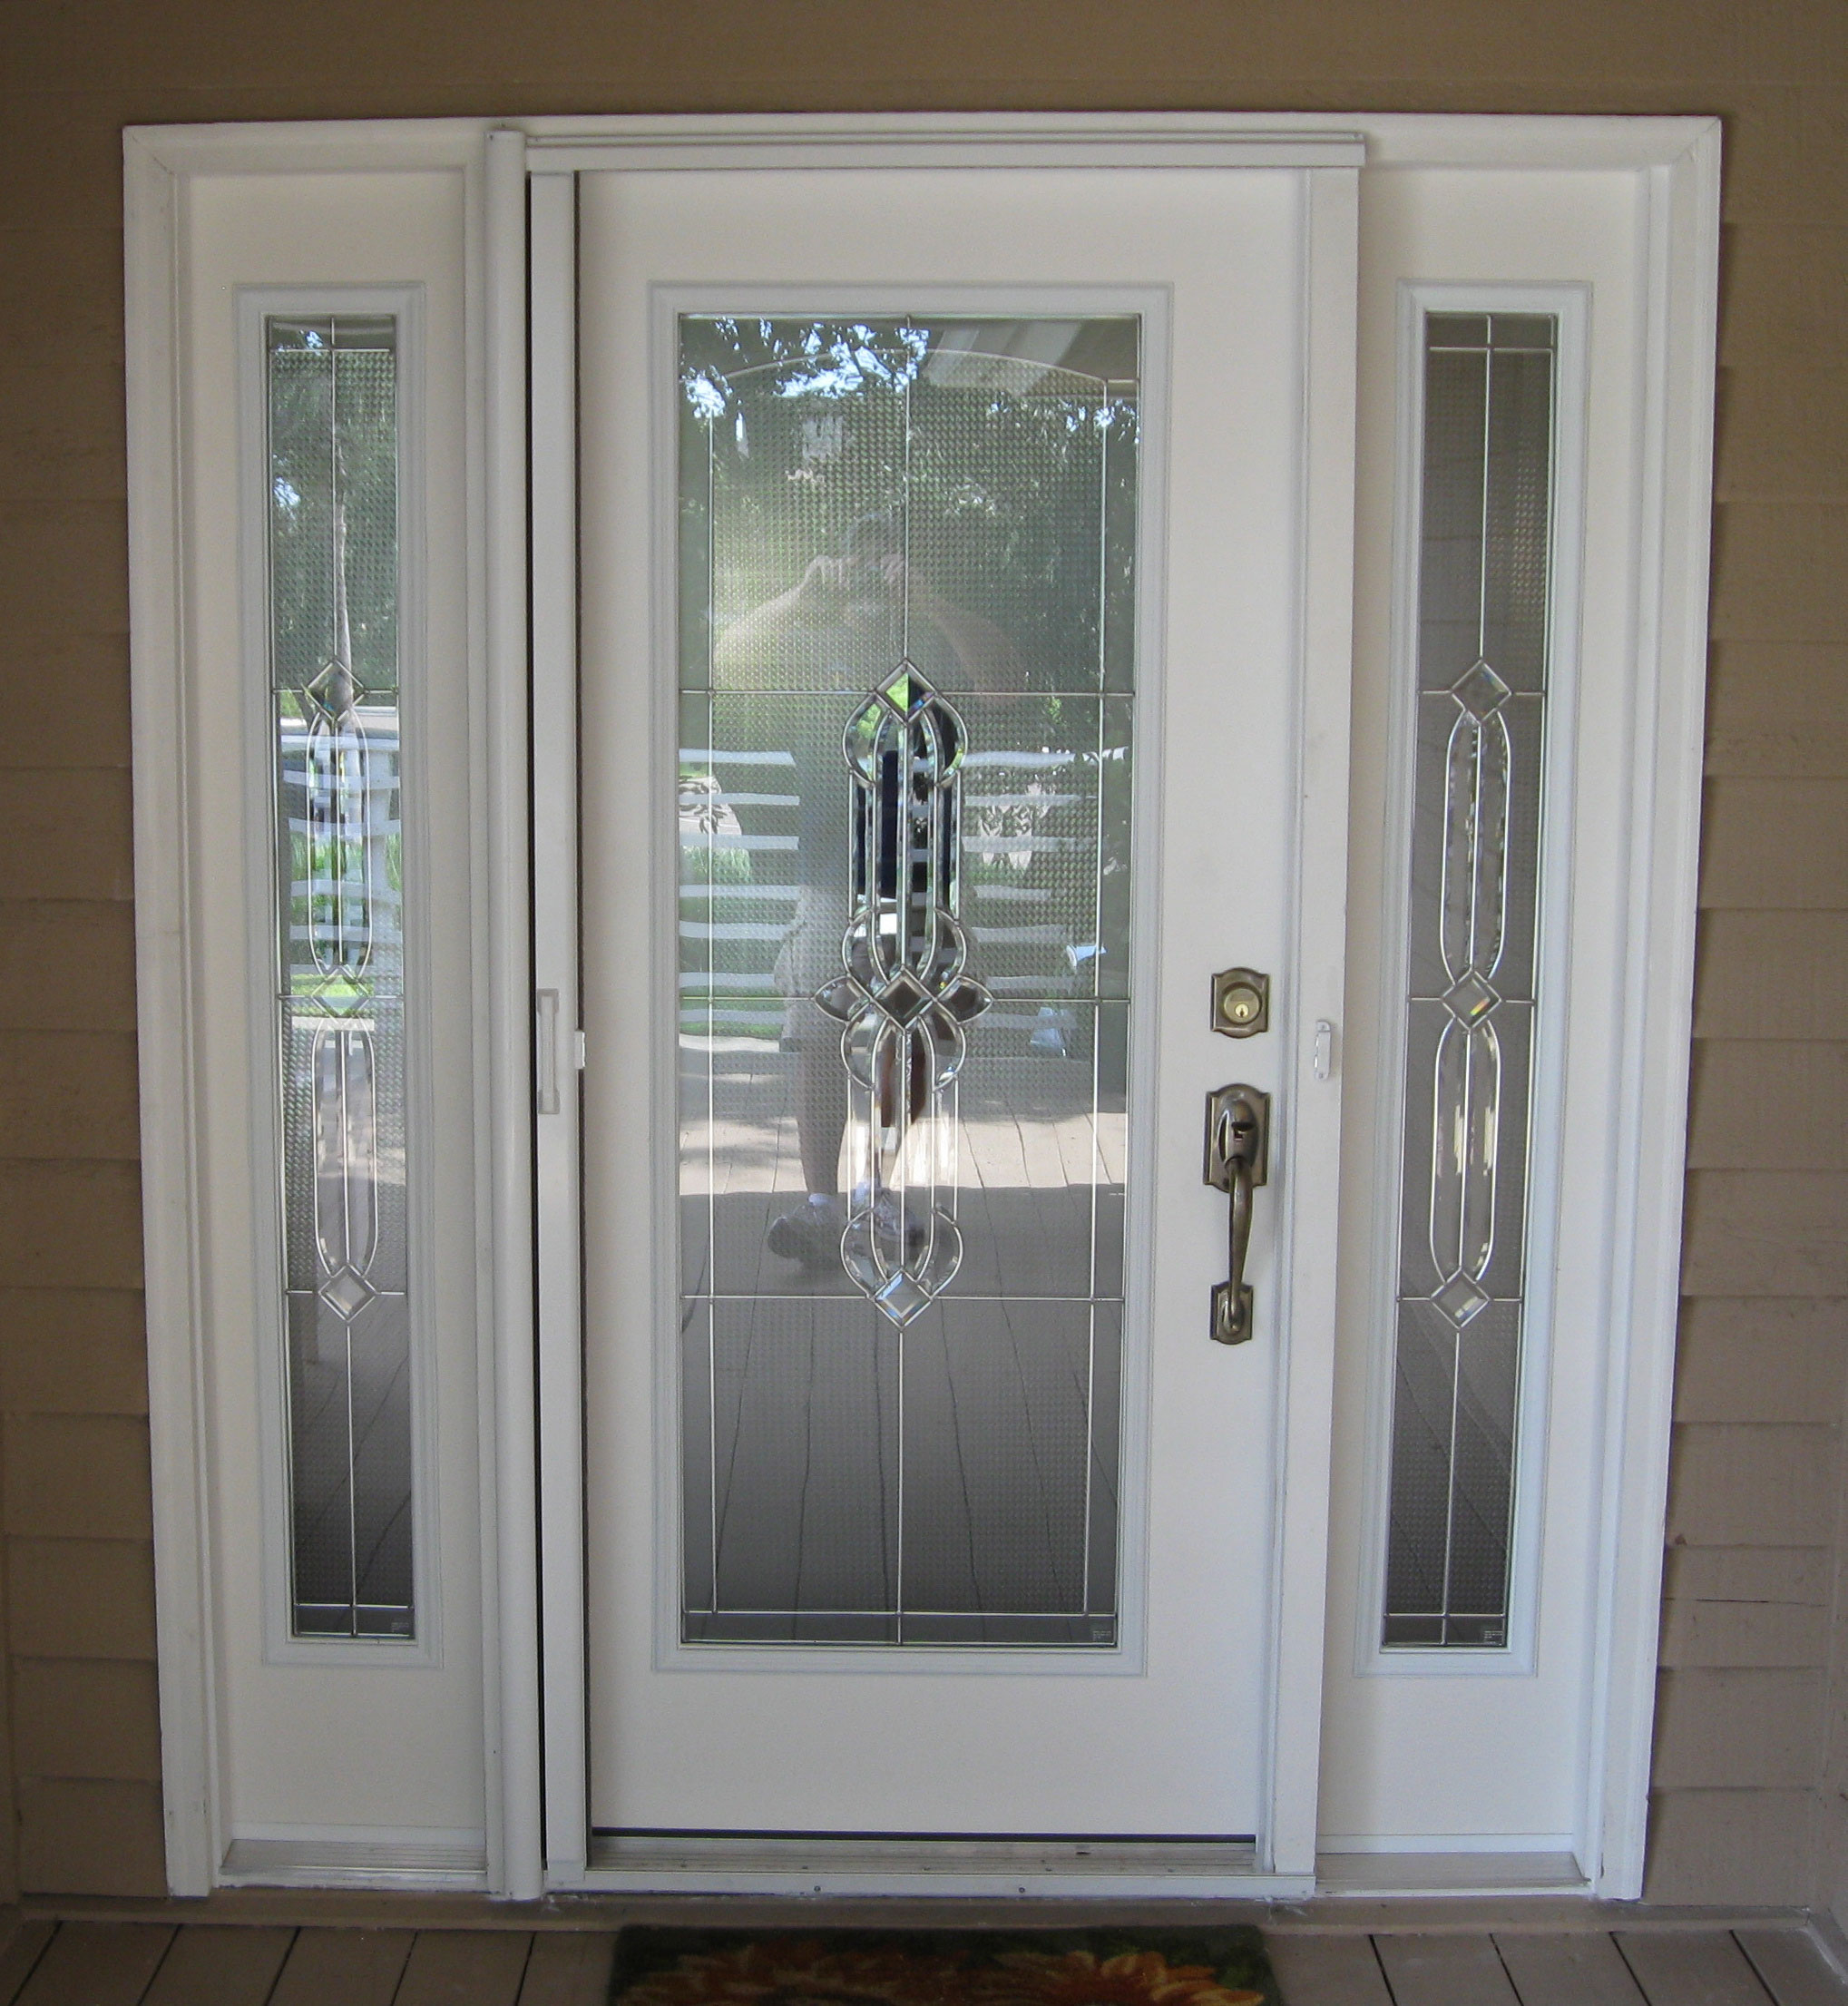 Gulfside glass and mirror tarpon springs florida for Entry doors with glass